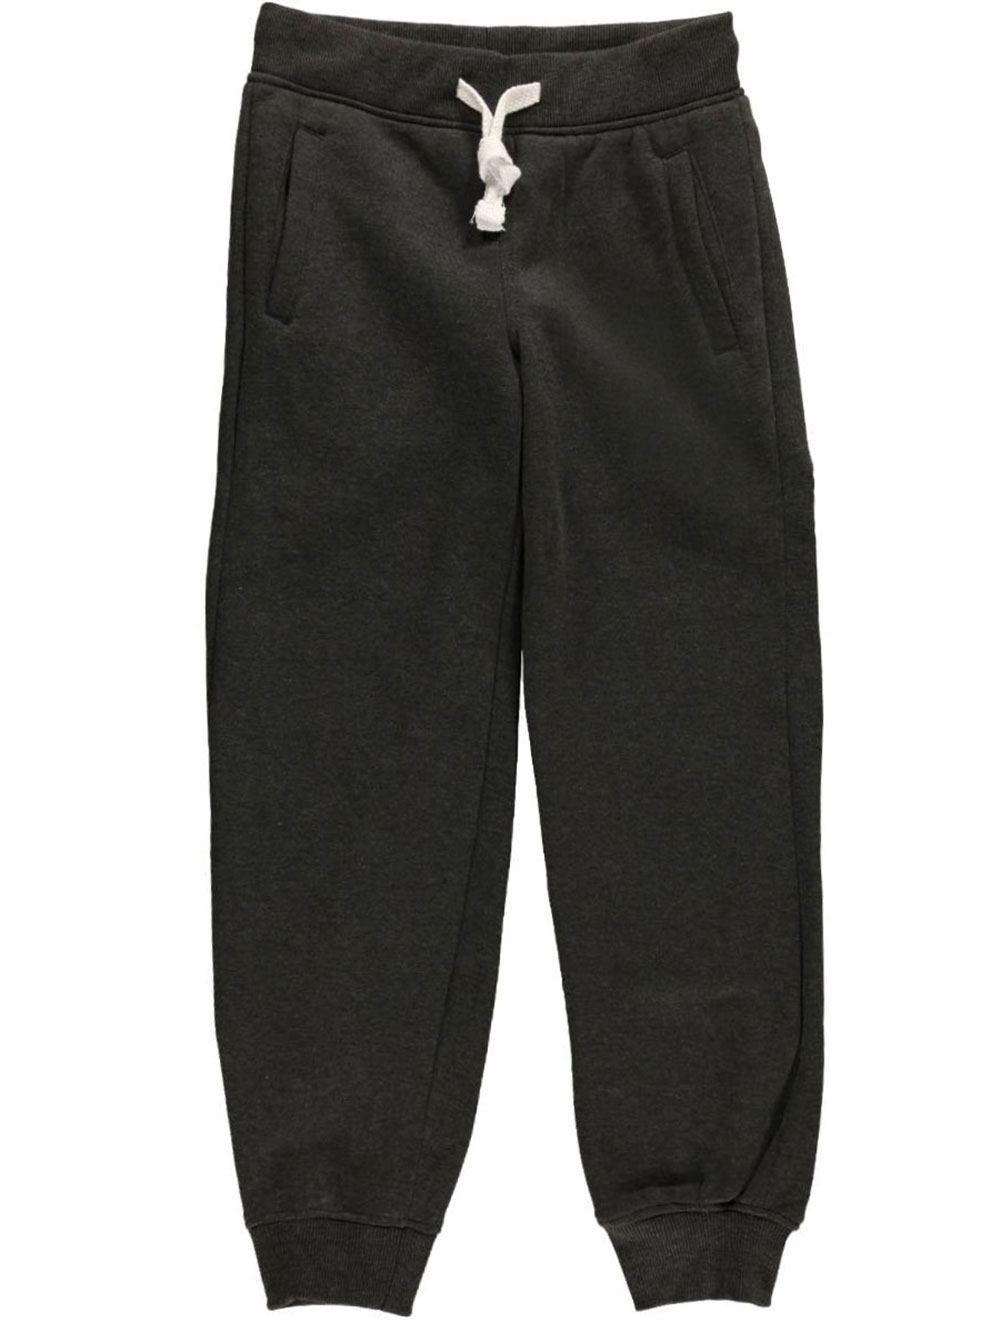 Boys Charcoal Gray Sweatpants